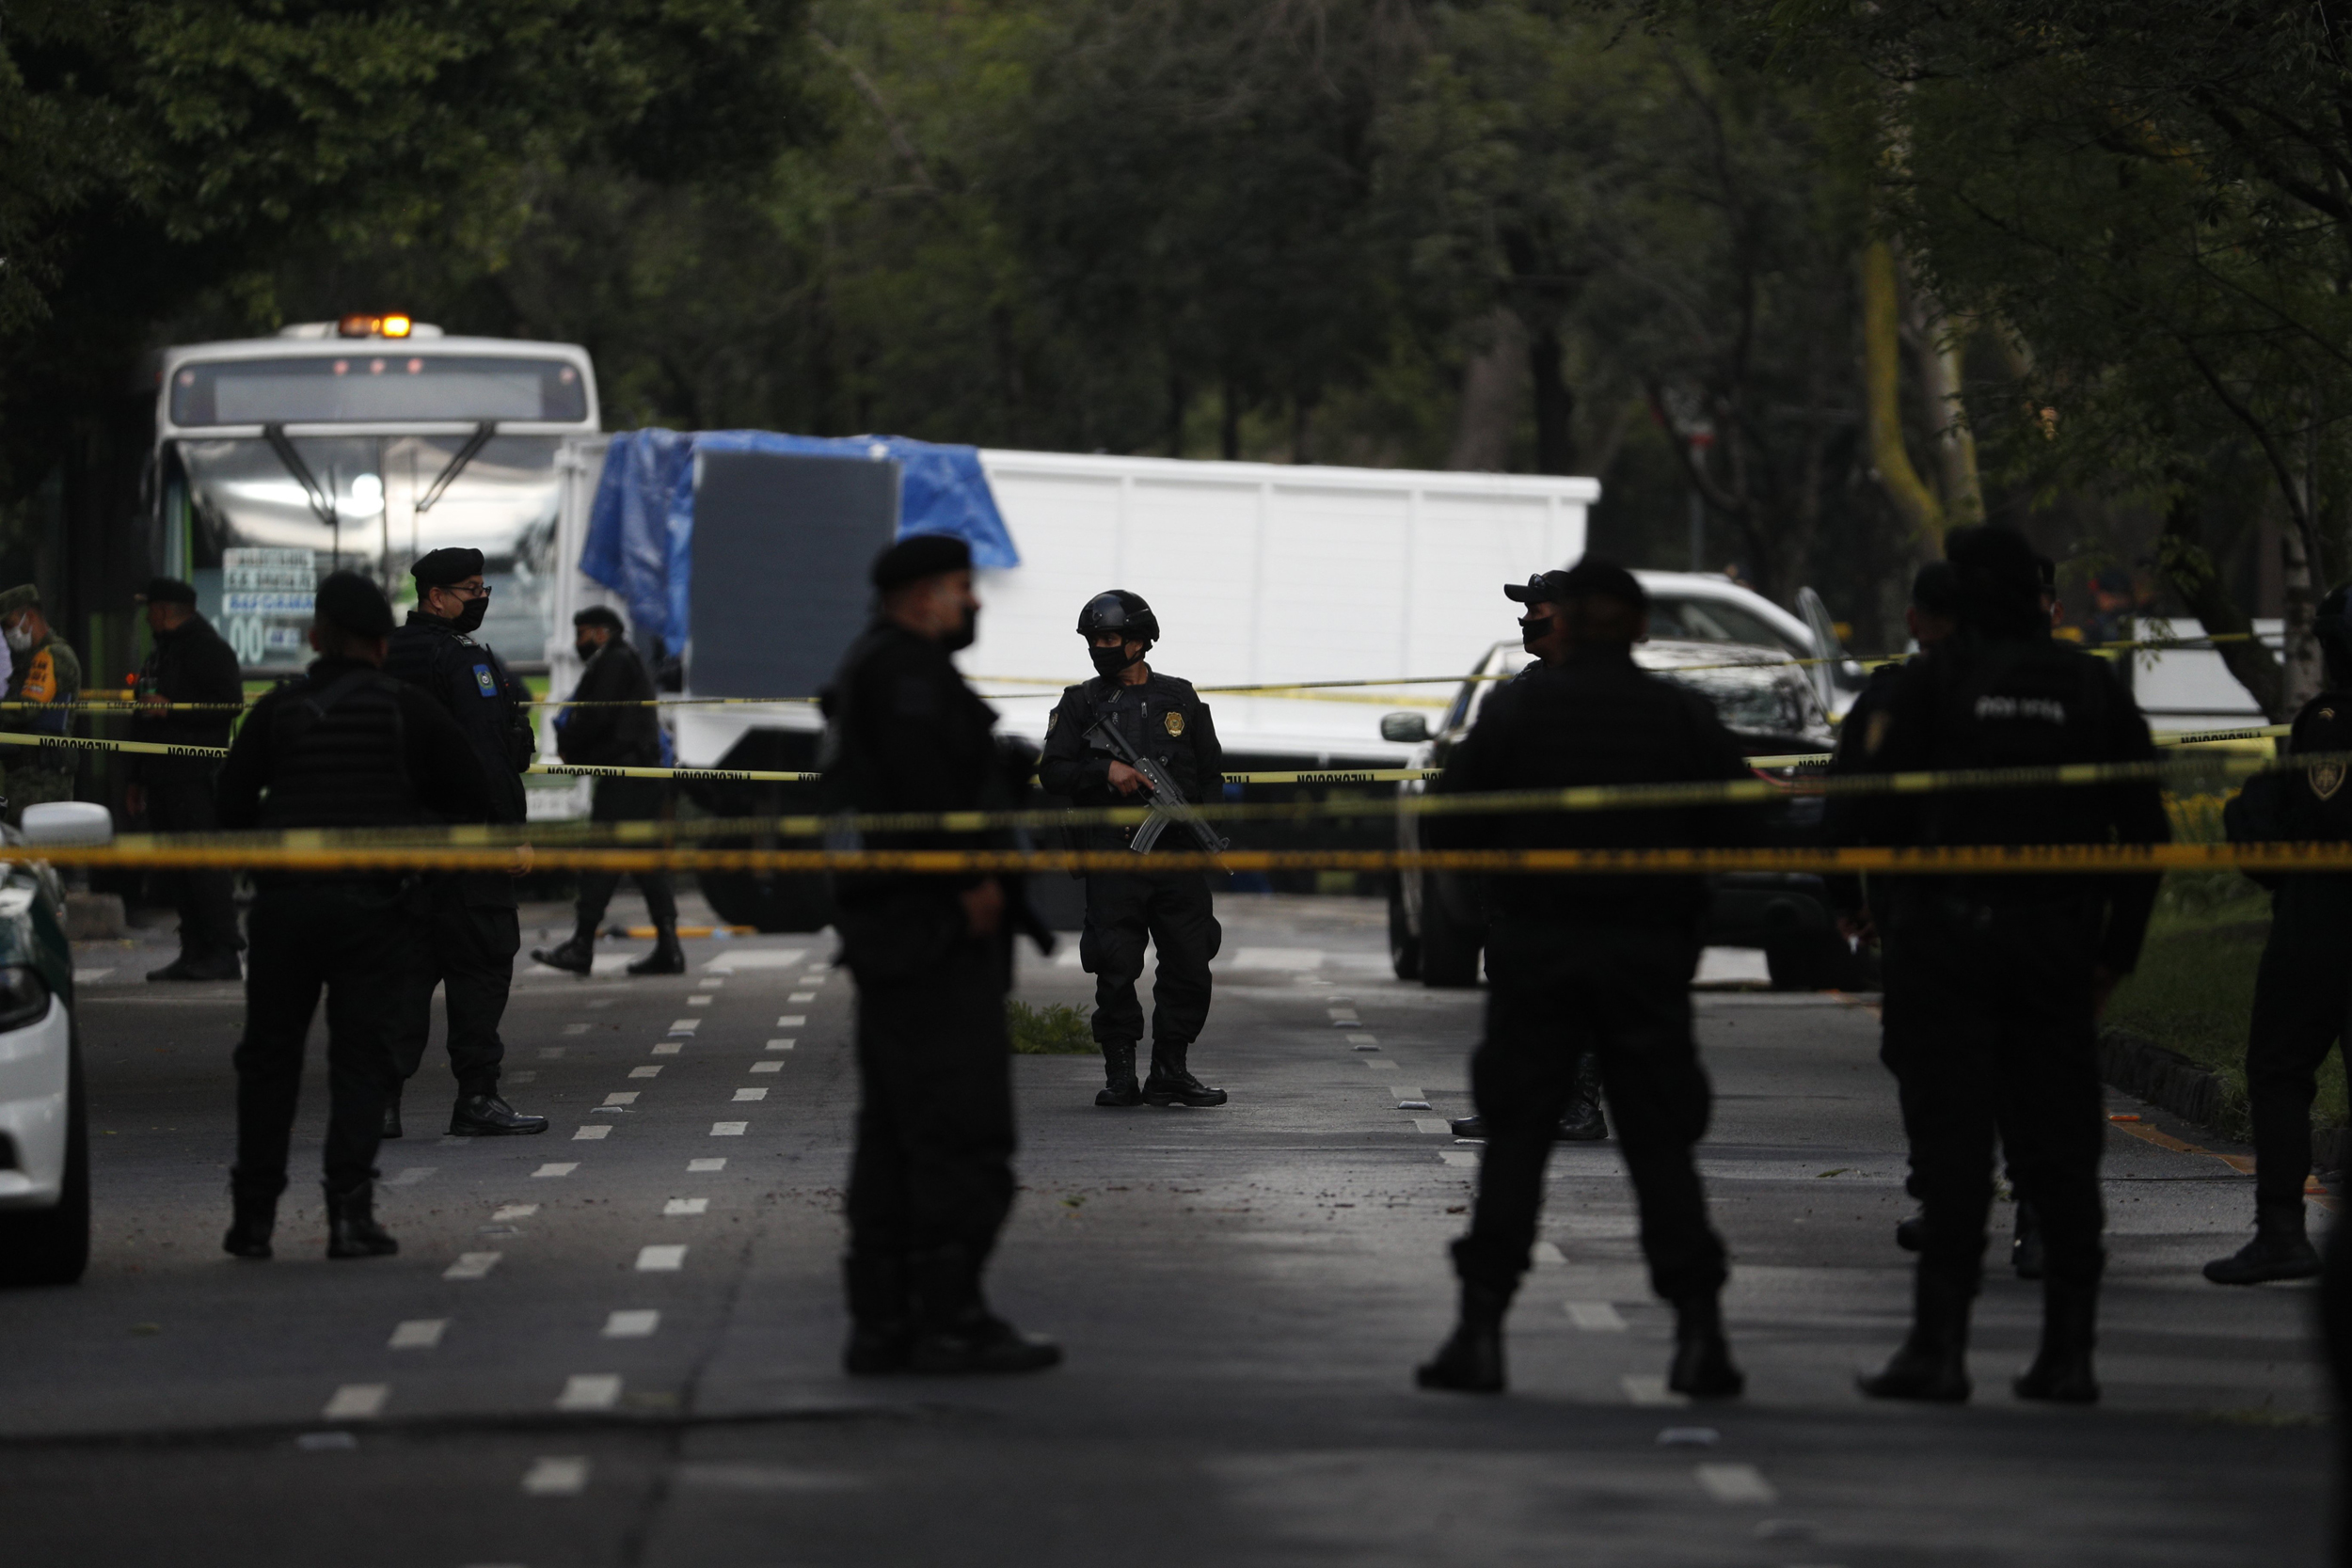 Mexico City police chief shot in assassination attempt, blames ...